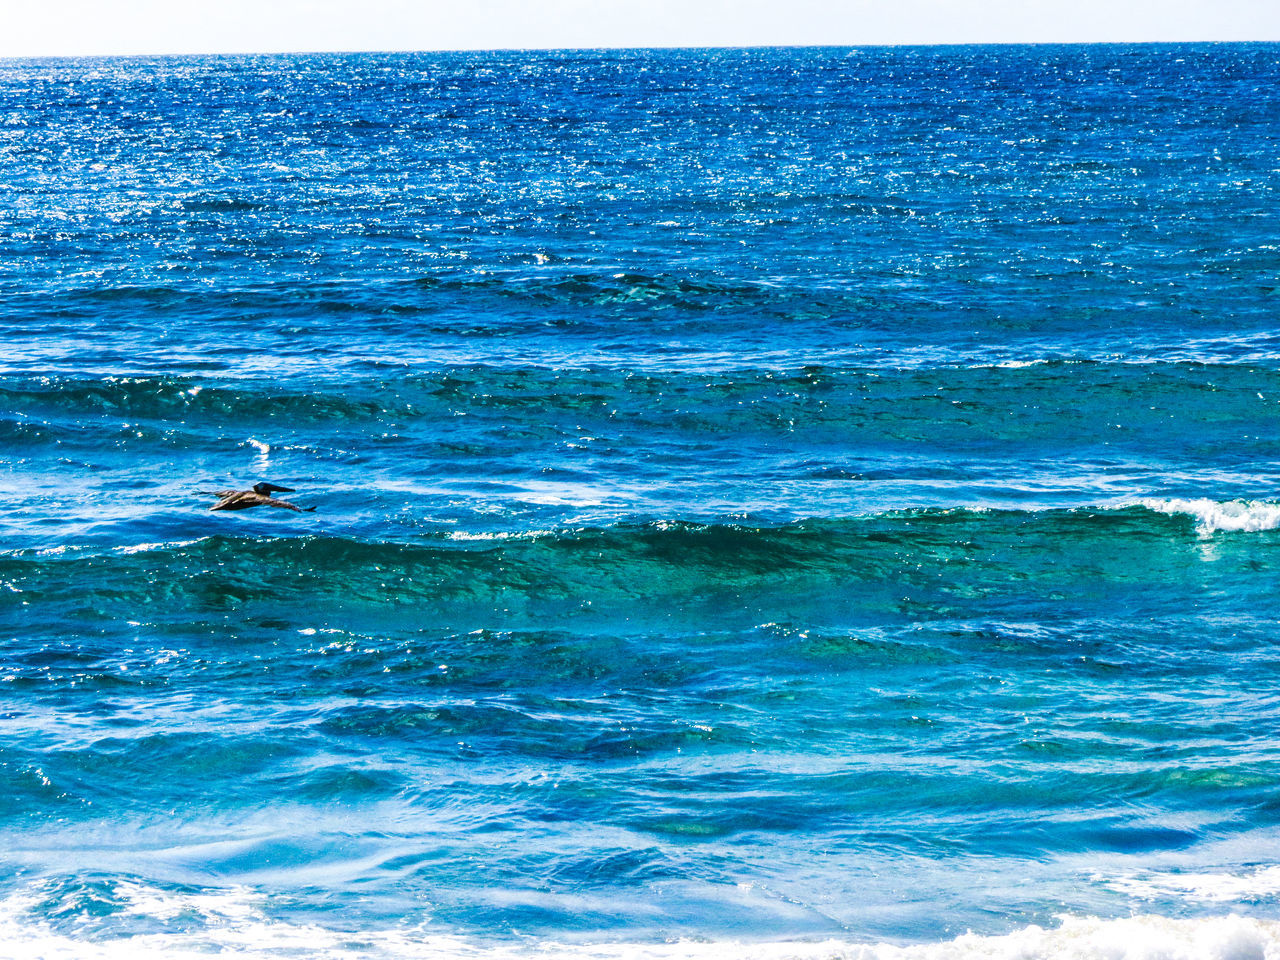 Blue Wave Sea Backgrounds Water Beach Rippled Abstract Full Frame Nature Beauty In Nature Outdoors Animals In The Wild No People Day Photography Scenics Horizon Over Water Swimming Sea Life Animal Themes Close-up UnderSea